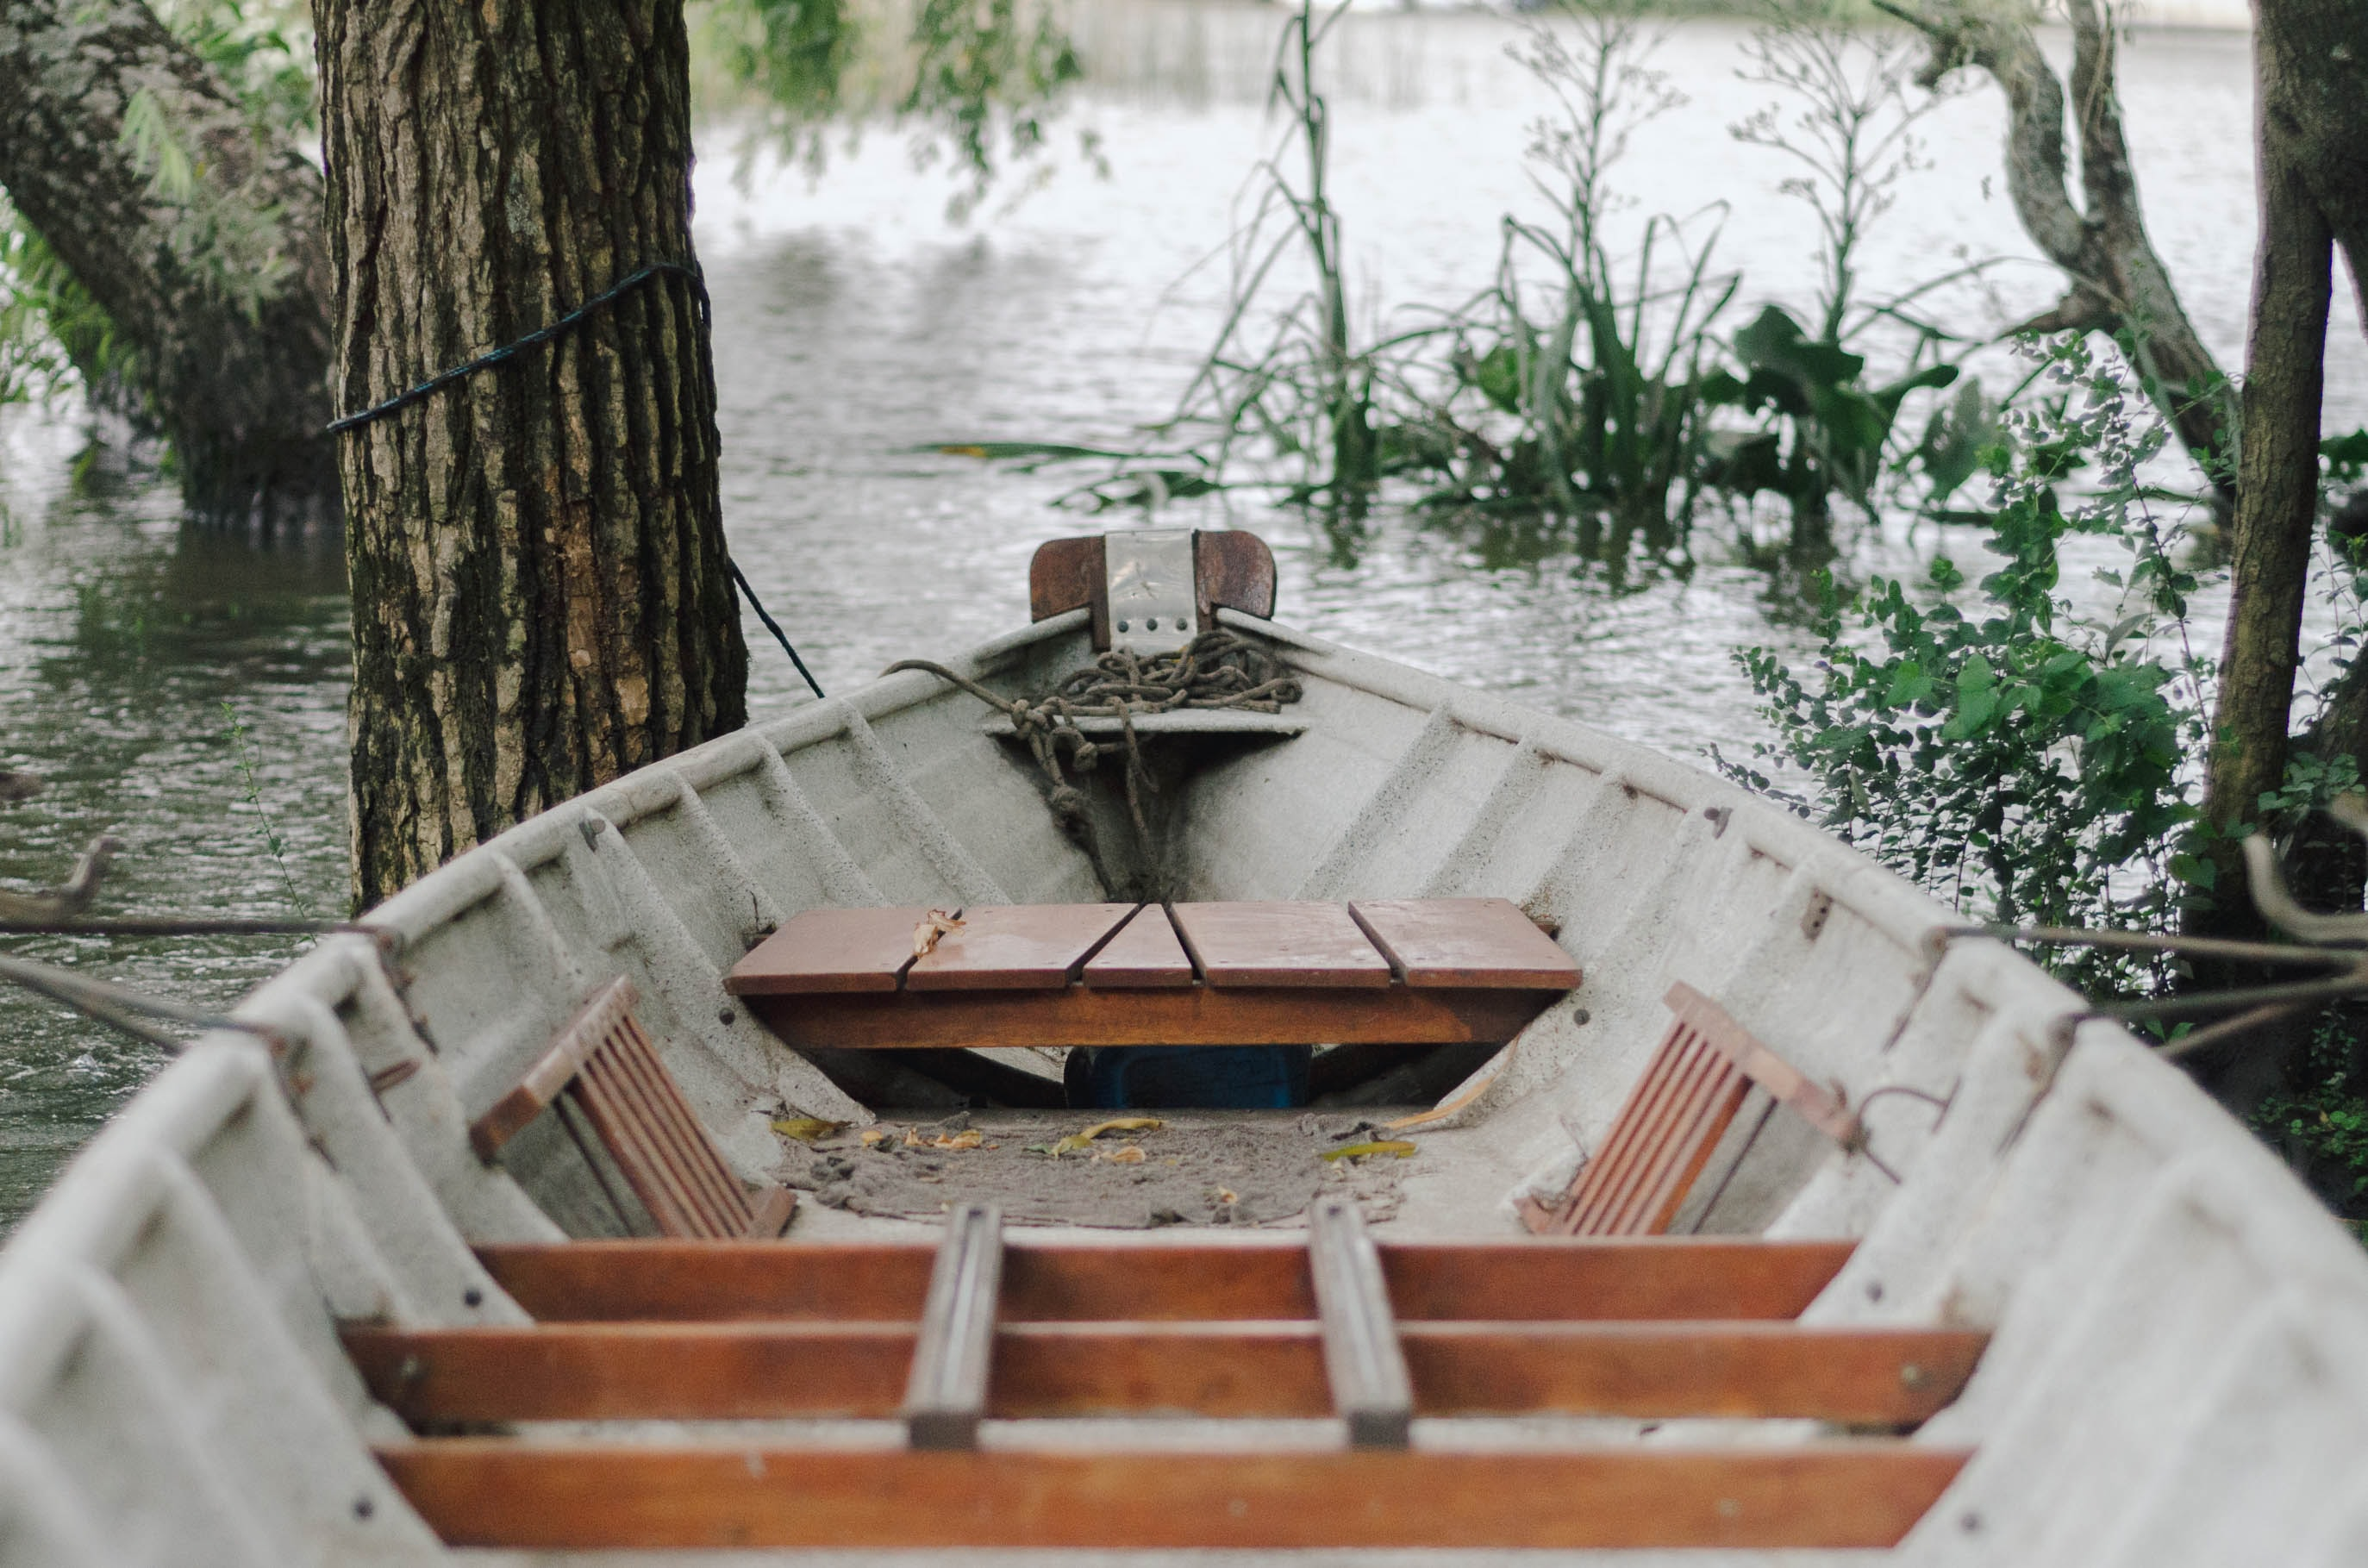 brown and white boat on lake surrounded by trees